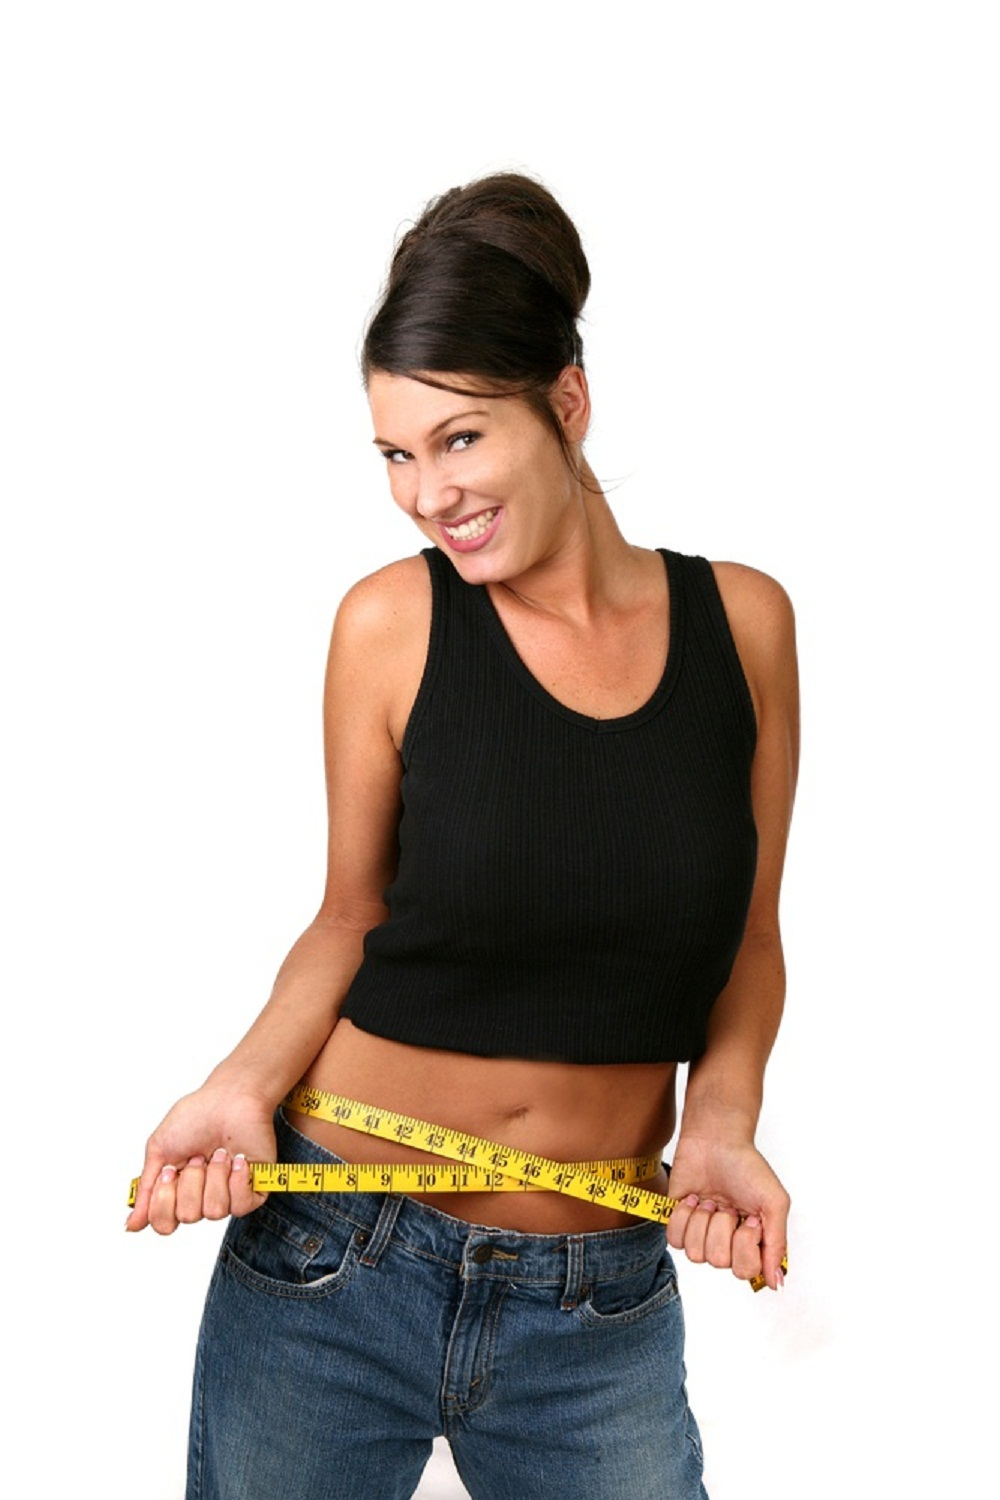 Makingthe fact understood that weight loss is a gradual process, the ...